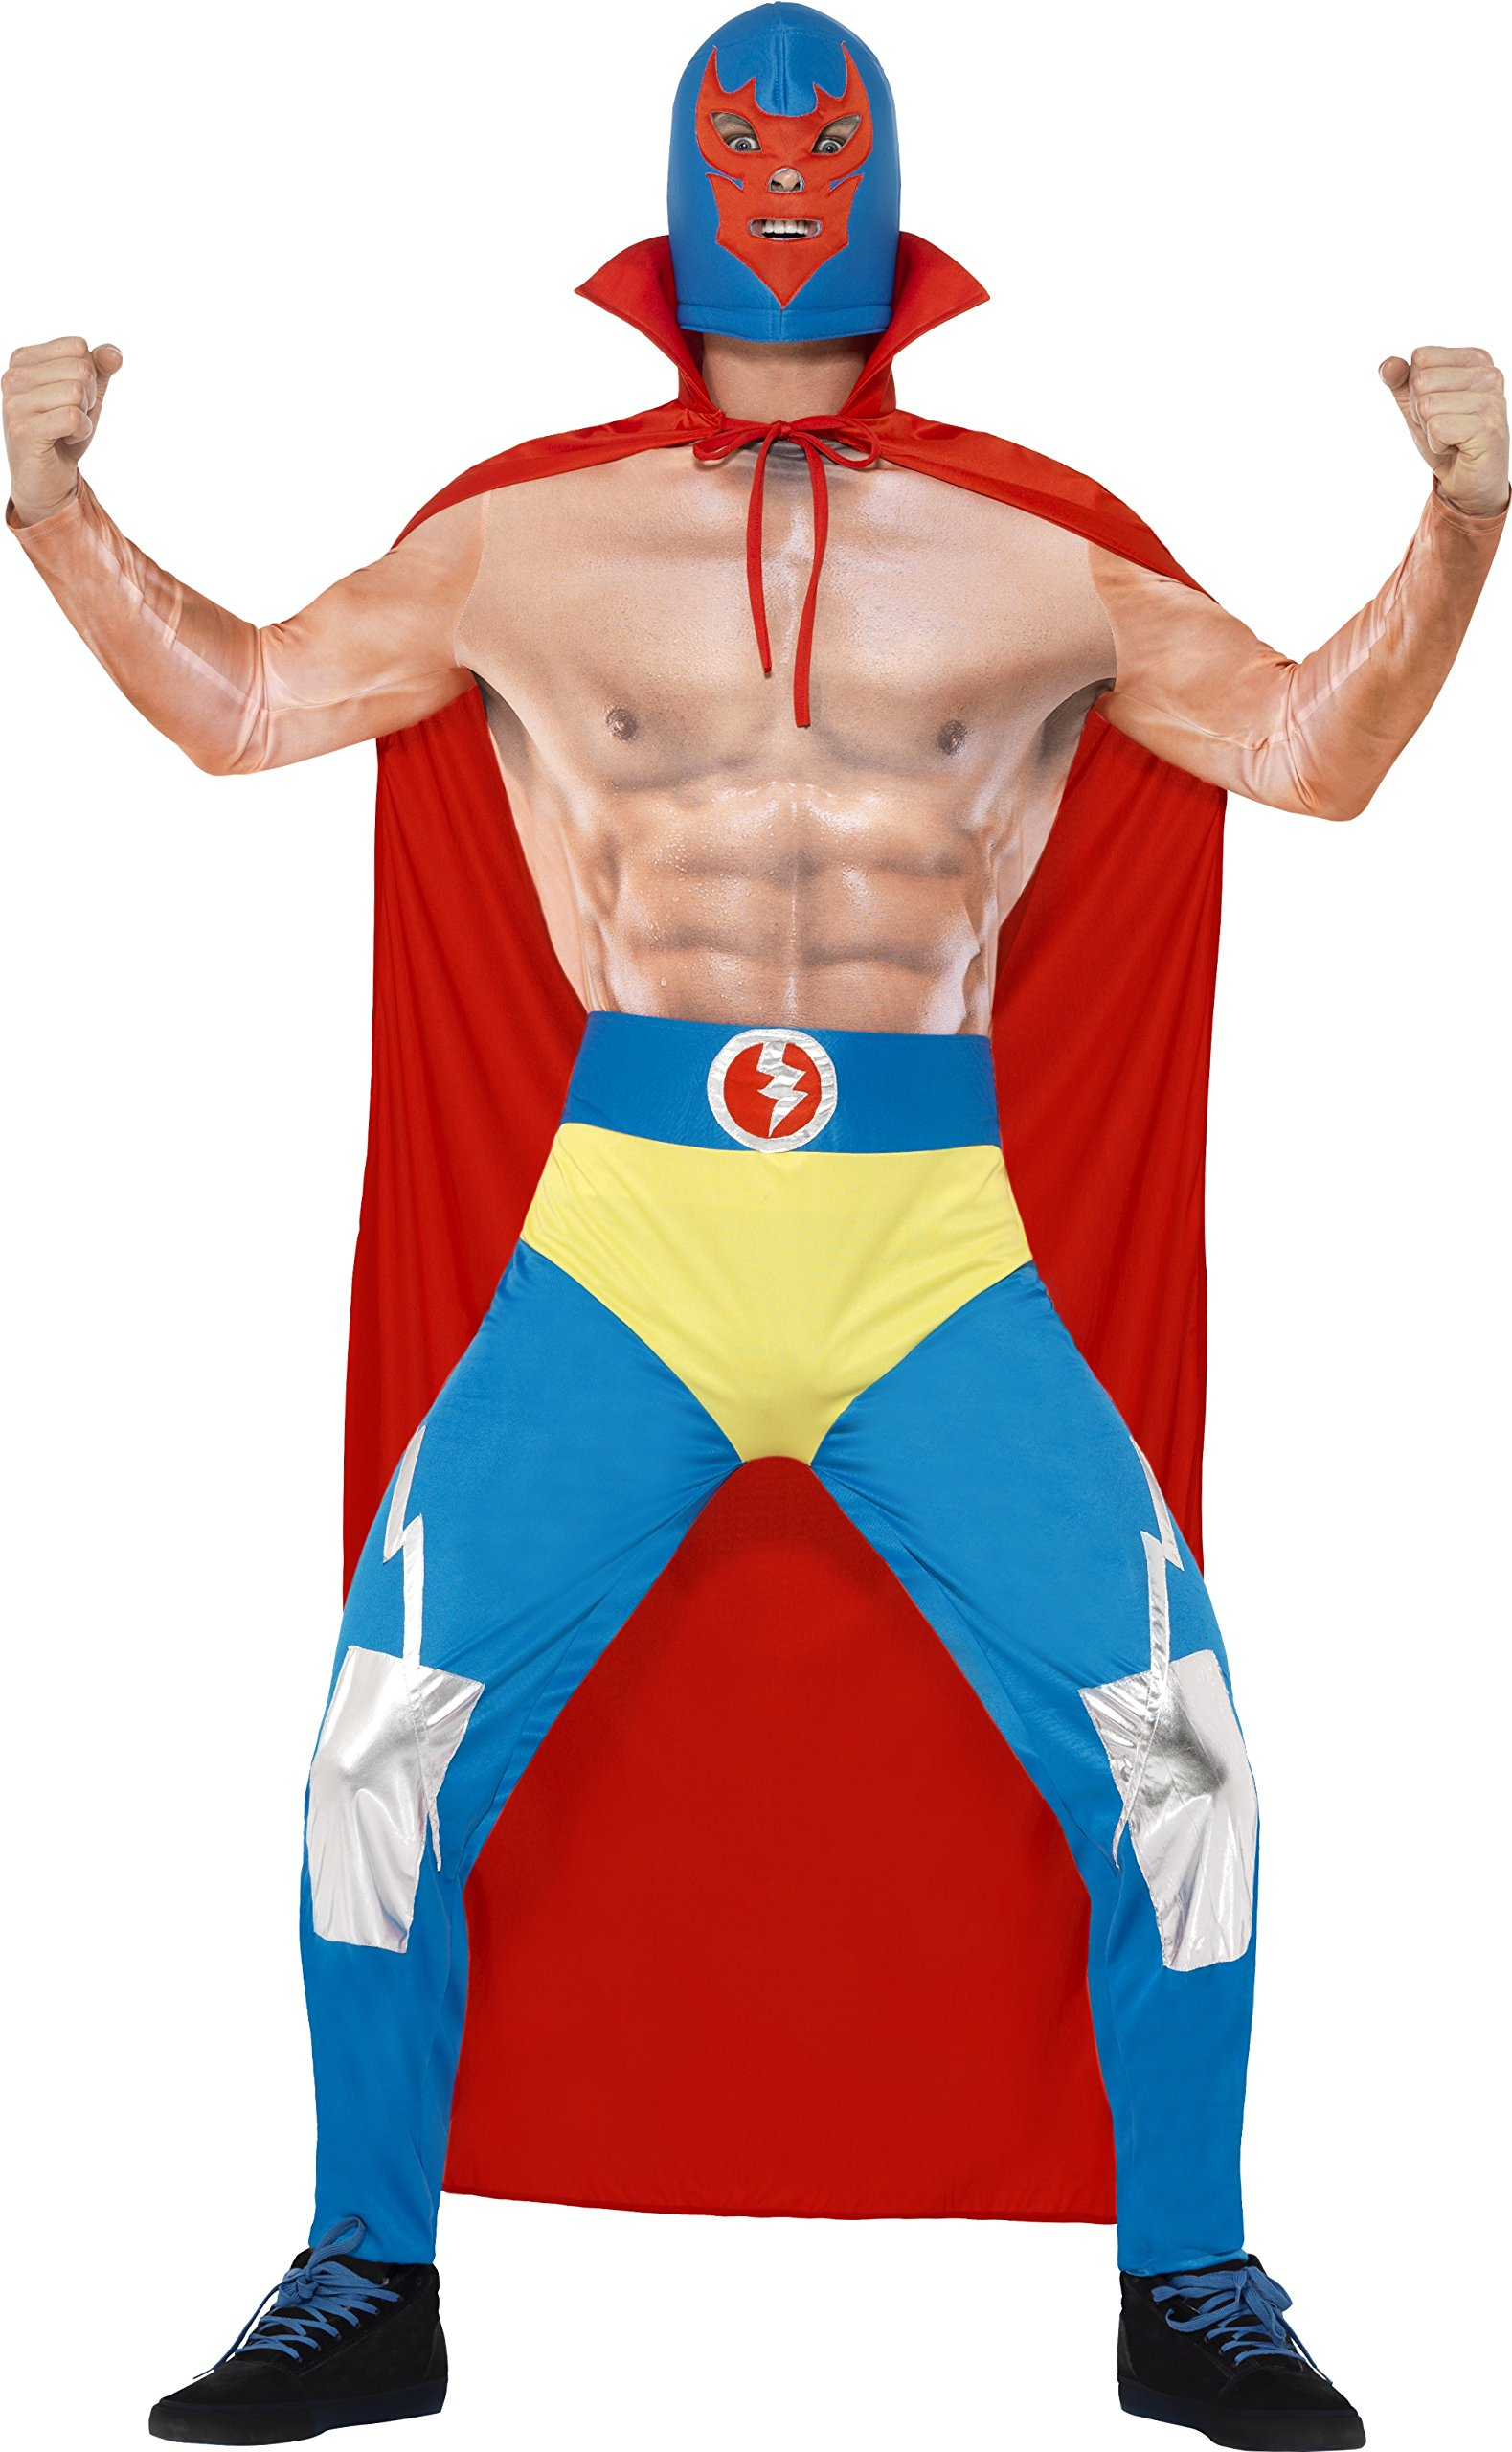 Smiffy's Men's Mexican Wrestler Costume, Cape, Leggings, Attached pants and Mask, Around The World, Serious Fun, Size L, 43667